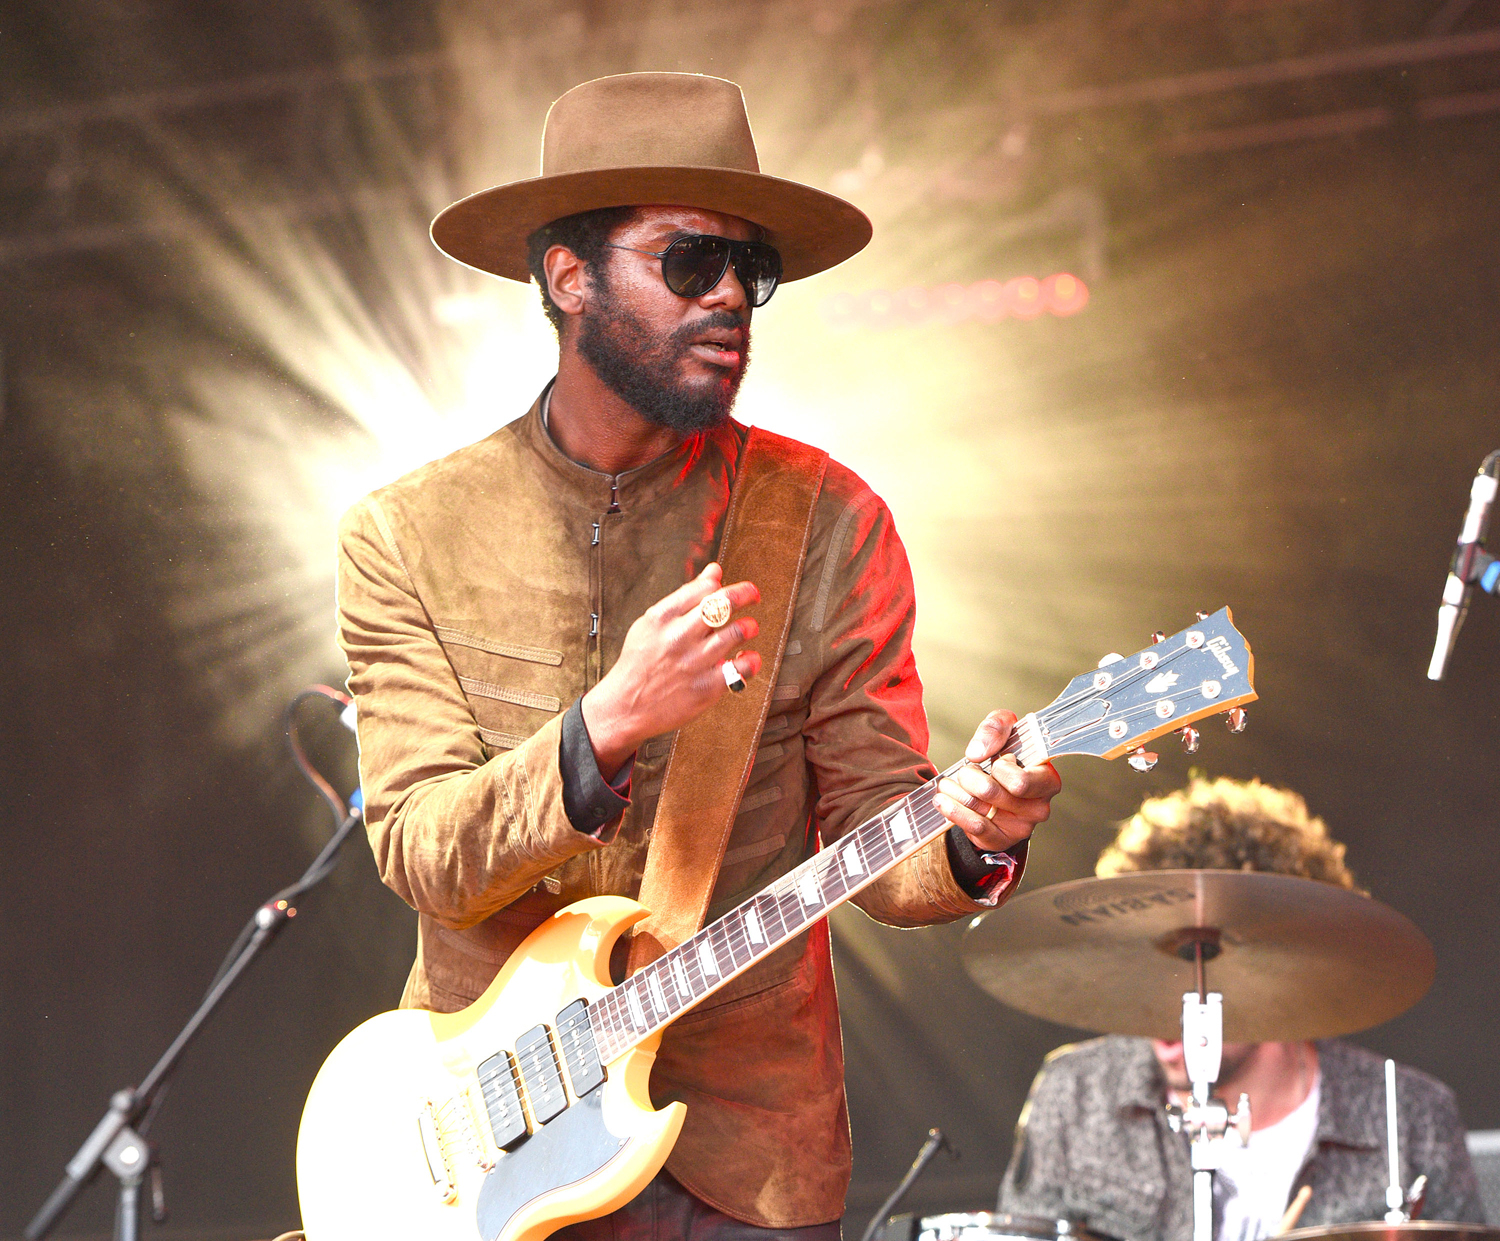 gary clark jr on jimi hendrix comparisons at monterey pop rolling stone. Black Bedroom Furniture Sets. Home Design Ideas